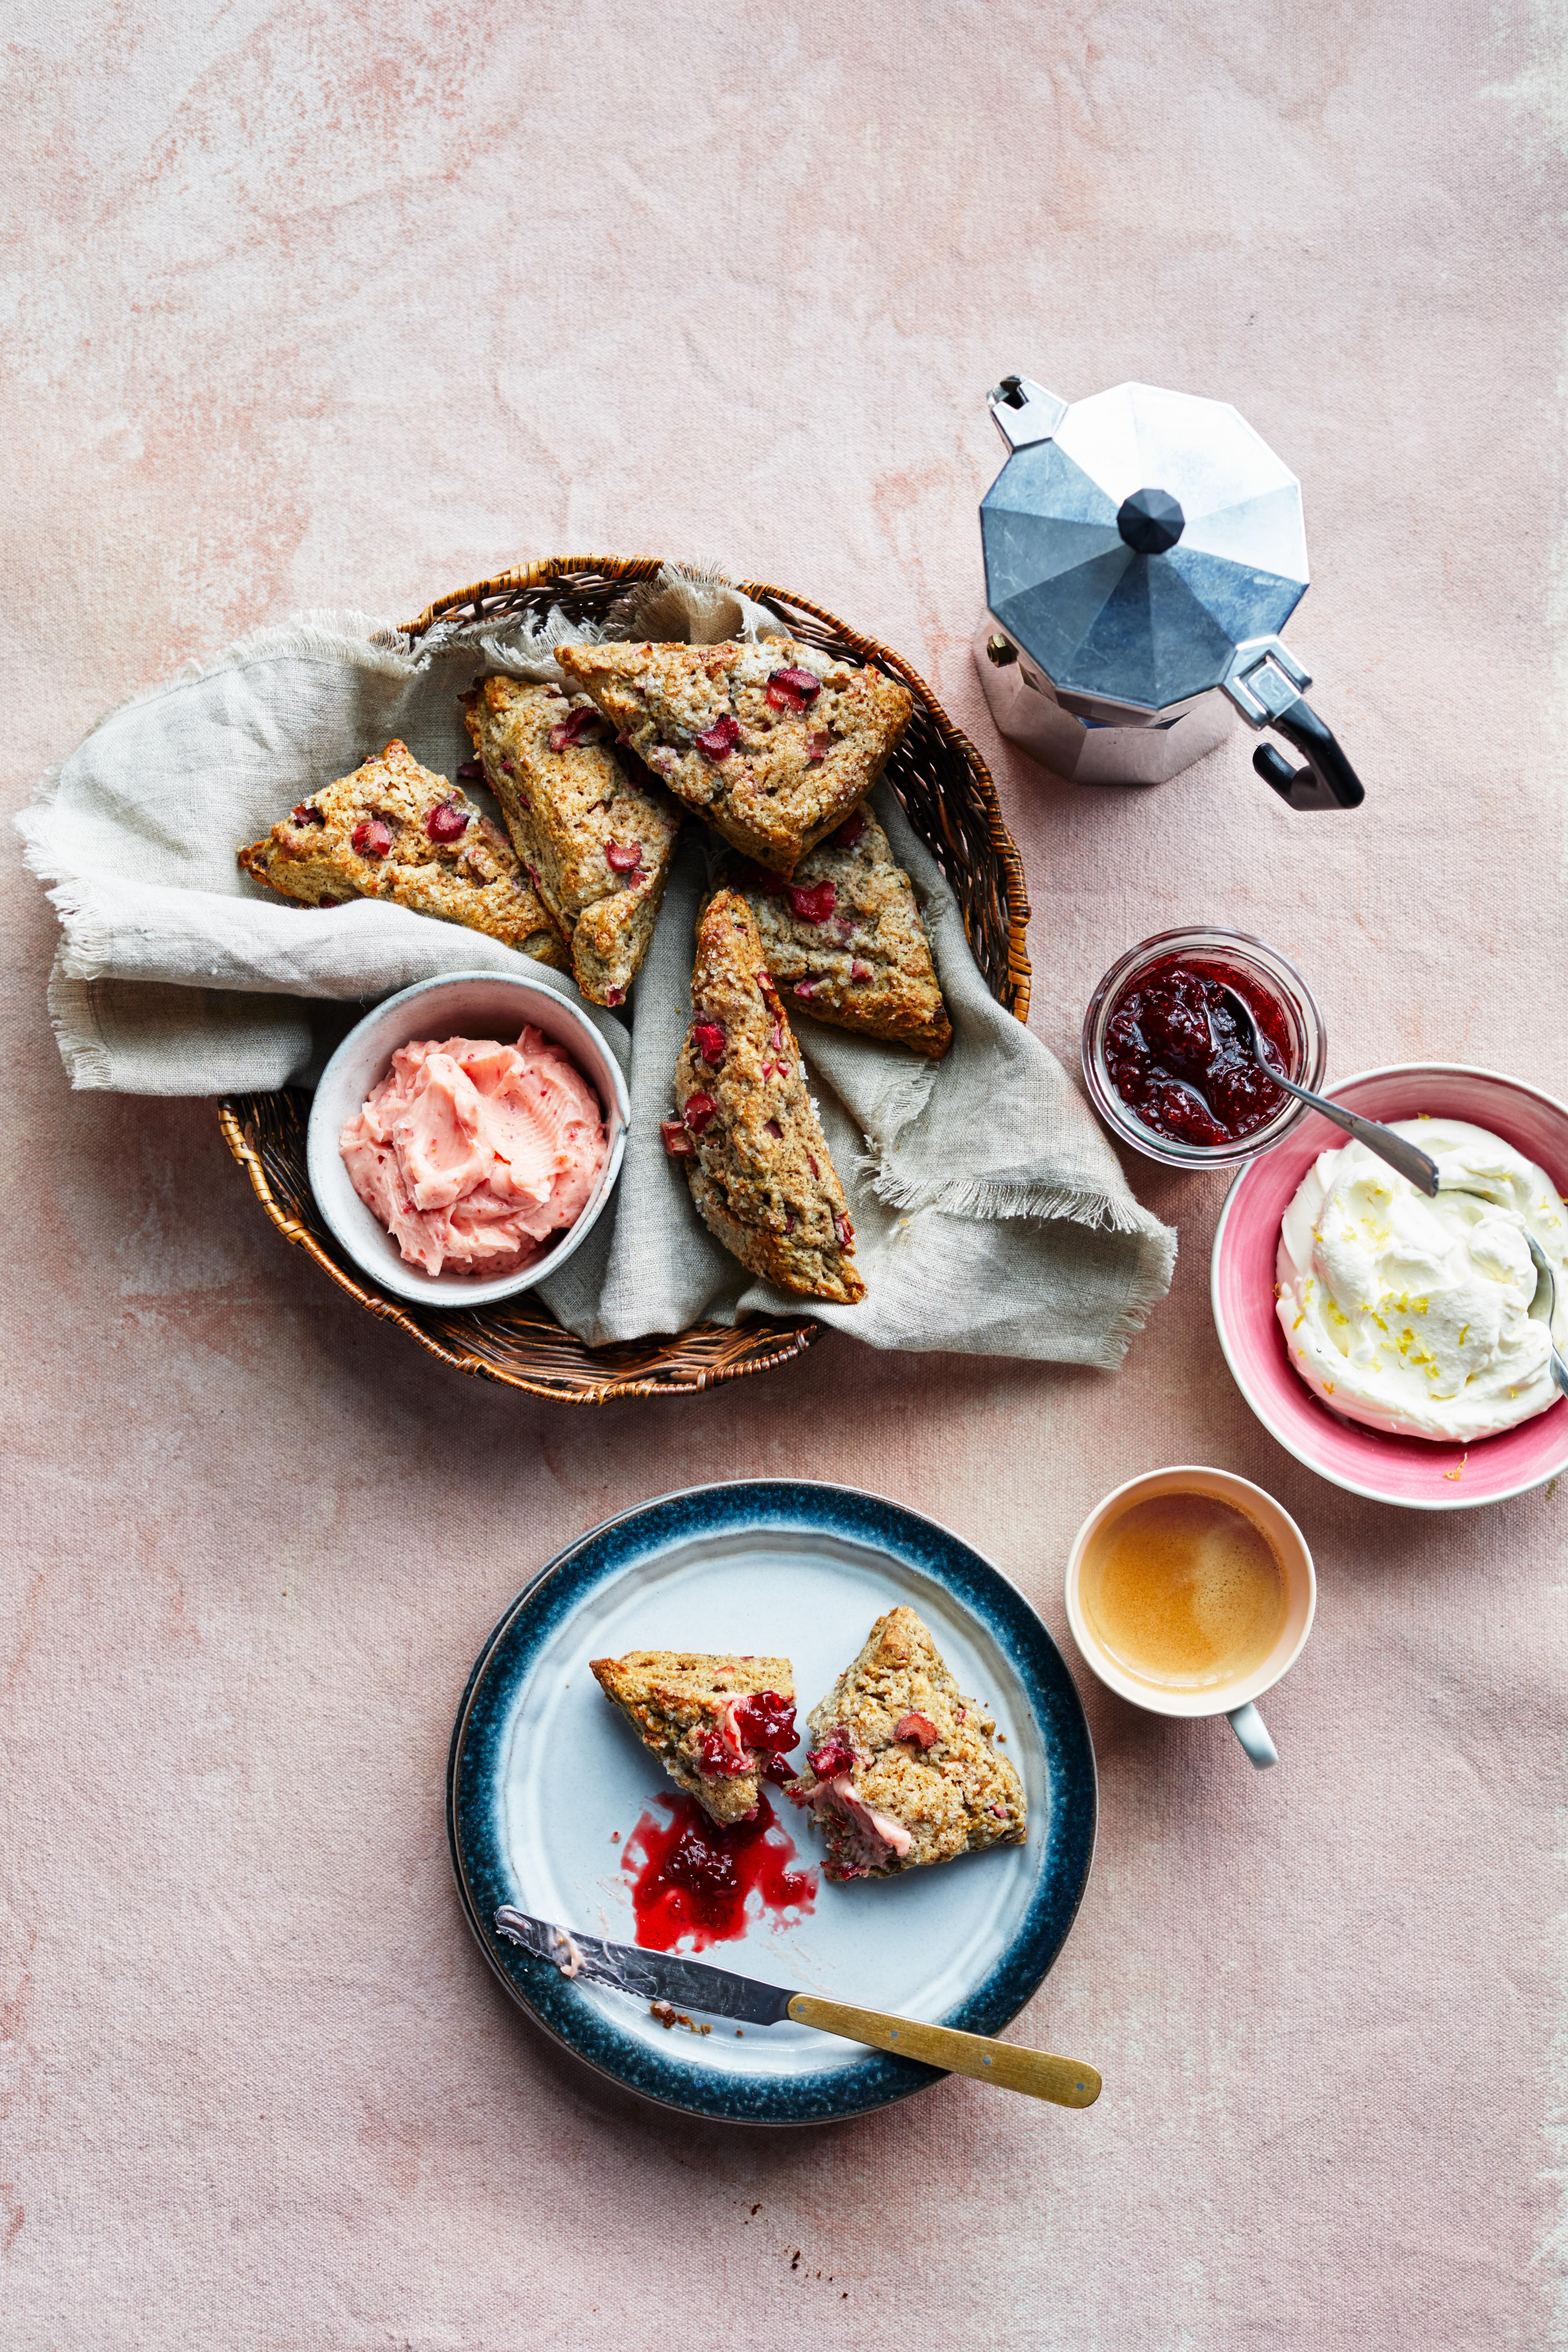 Buckwheat Rhubarb Scones with Strawberry Butter